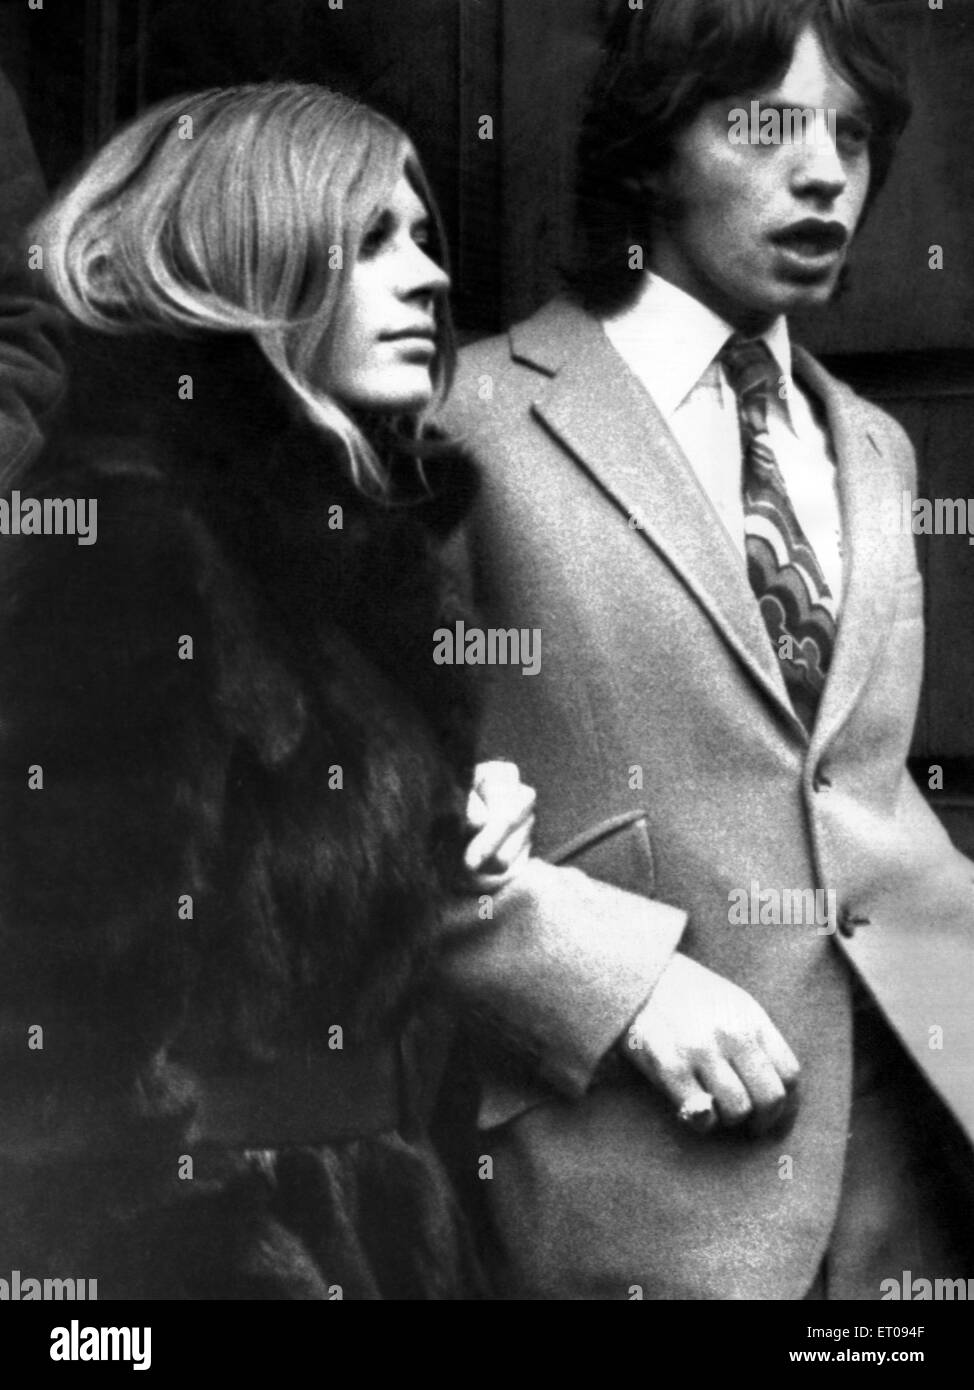 Marianne Faithfull and Mick Jagger on their way to court. 18th December 1969. - Stock Image